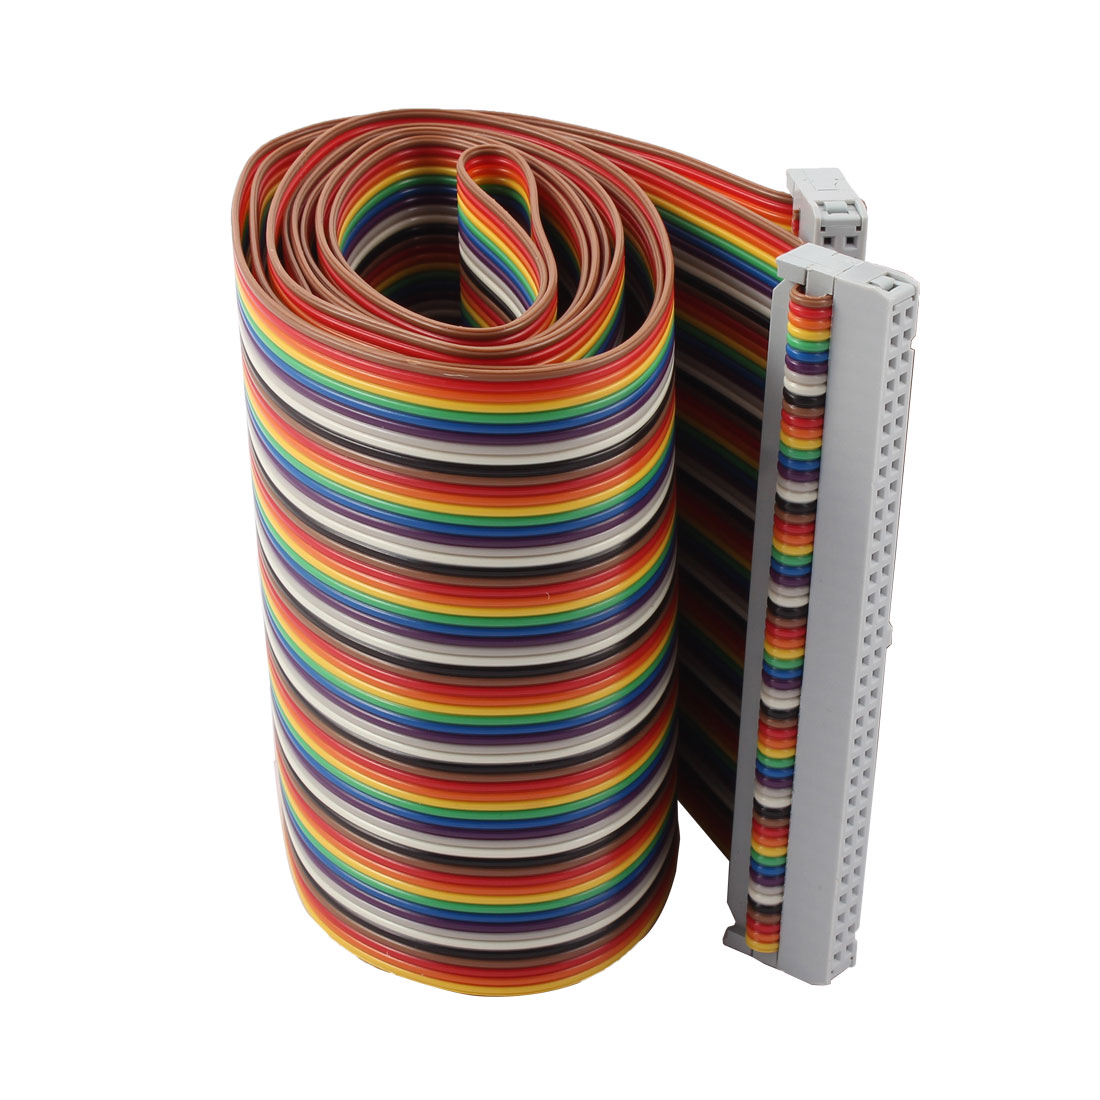 2.54mm Pitch 4.2Ft 64 Pin F/F IDC Flat Ribbon Cable Cord Connector Multicolor